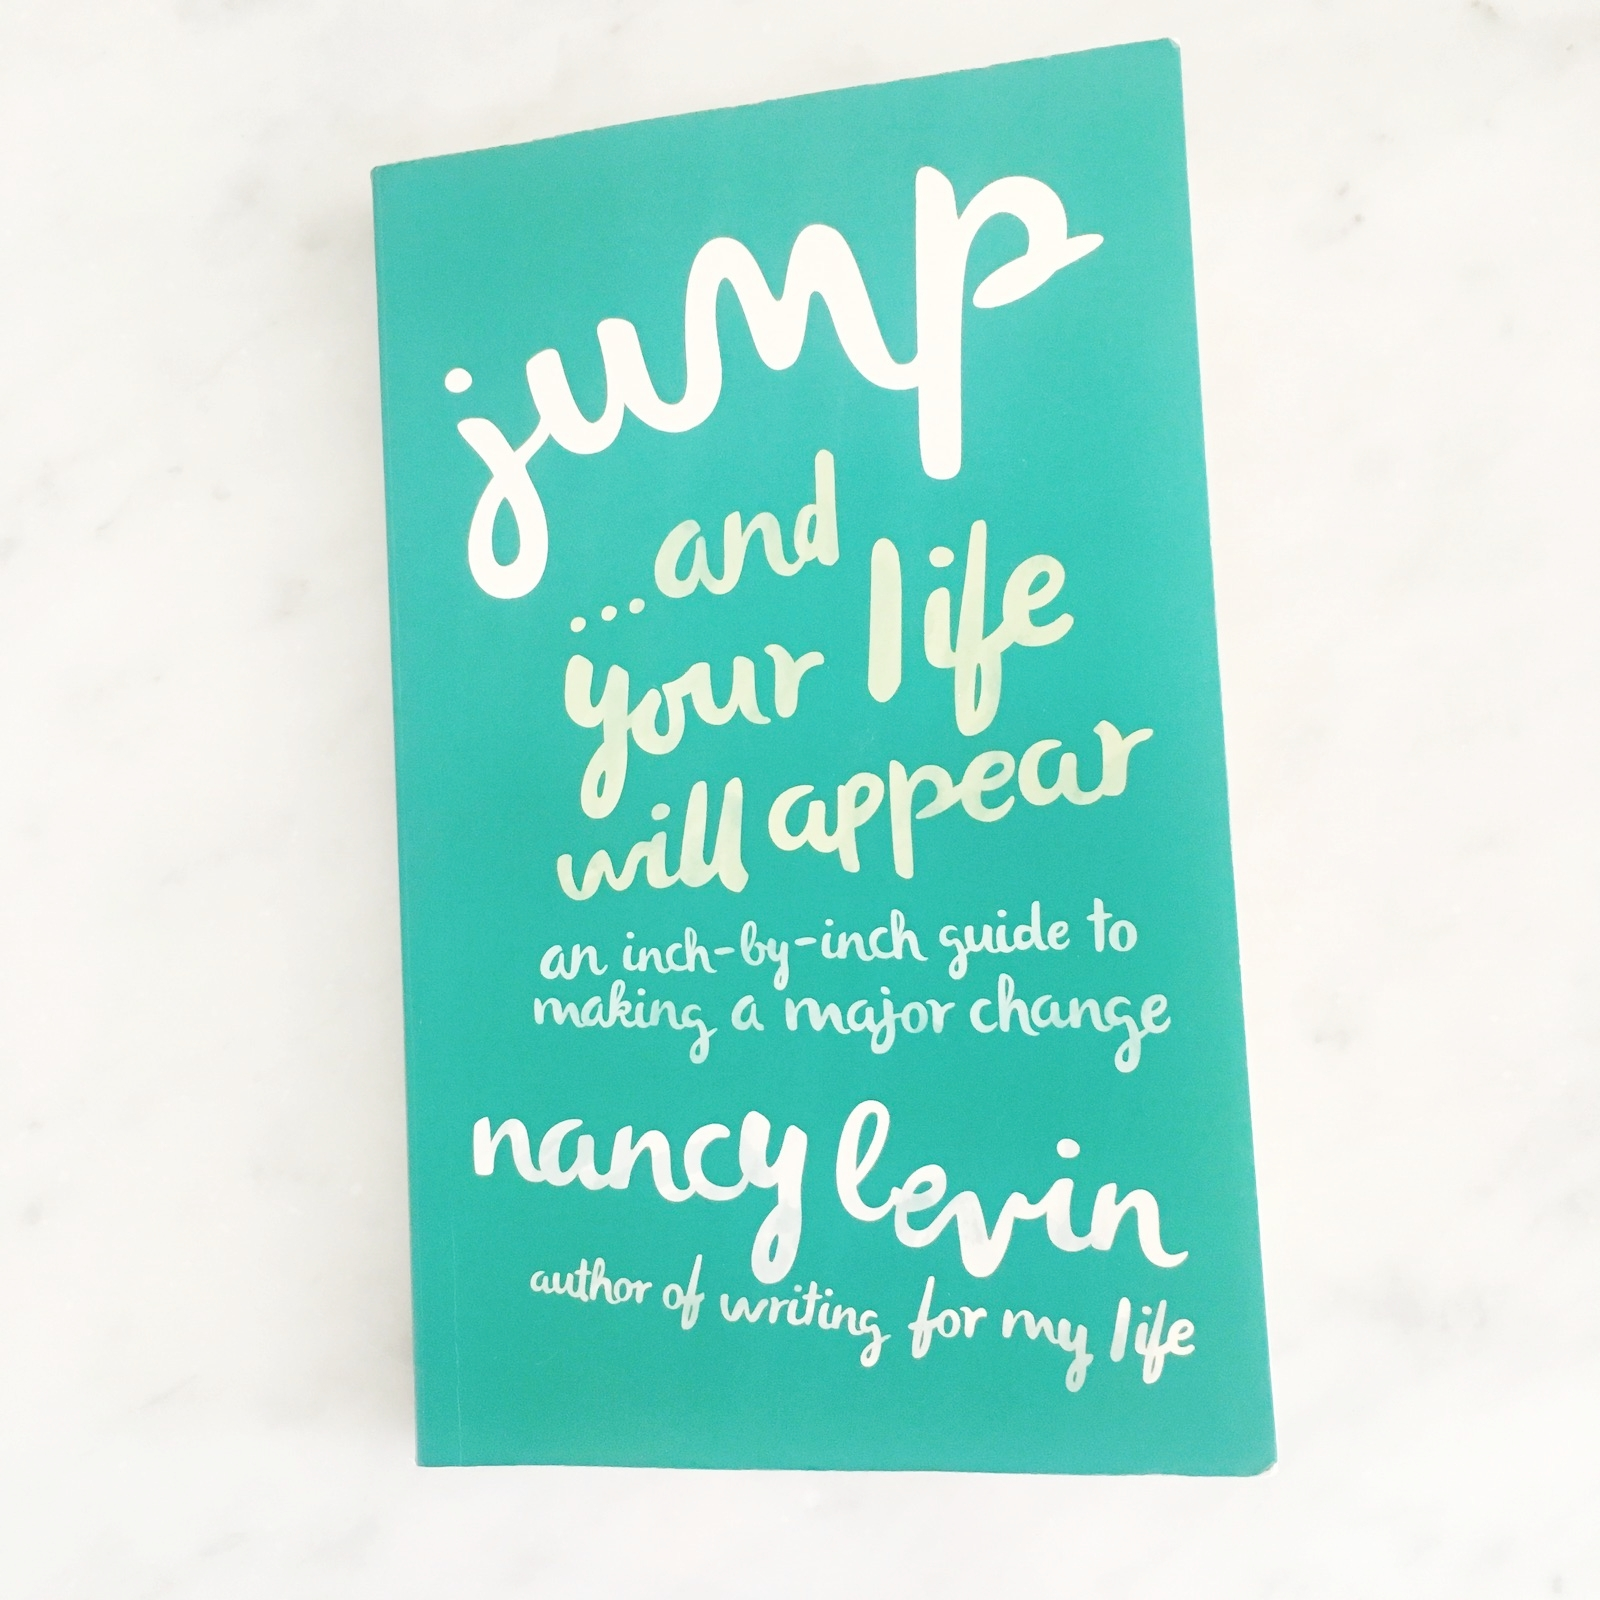 I can't recommend Nancy's book enough if you're going through a transition in your life, or just thinking about making a change, big or small. It's full of her wisdom and lessons, along with tons of stories of people who've made major changes in their lives too. I found it at a time when I was in need of just this kind of guidance and hope you'll check it out if you're in need of a little guidance too.Click the button below to take a look! -